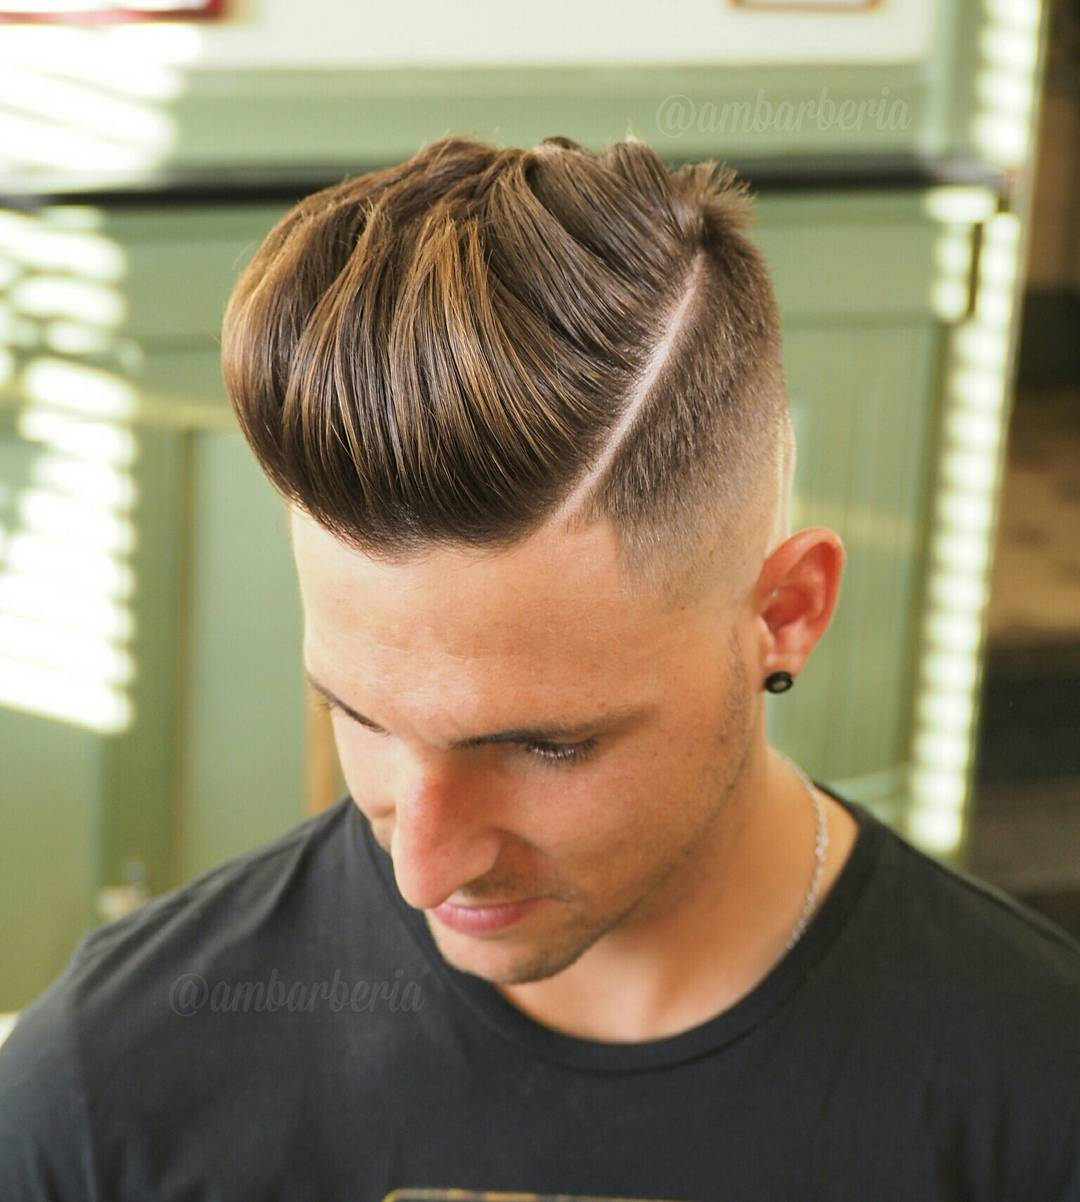 ambarberia-pompadour-hard-part-high-fade-haircut-for-men